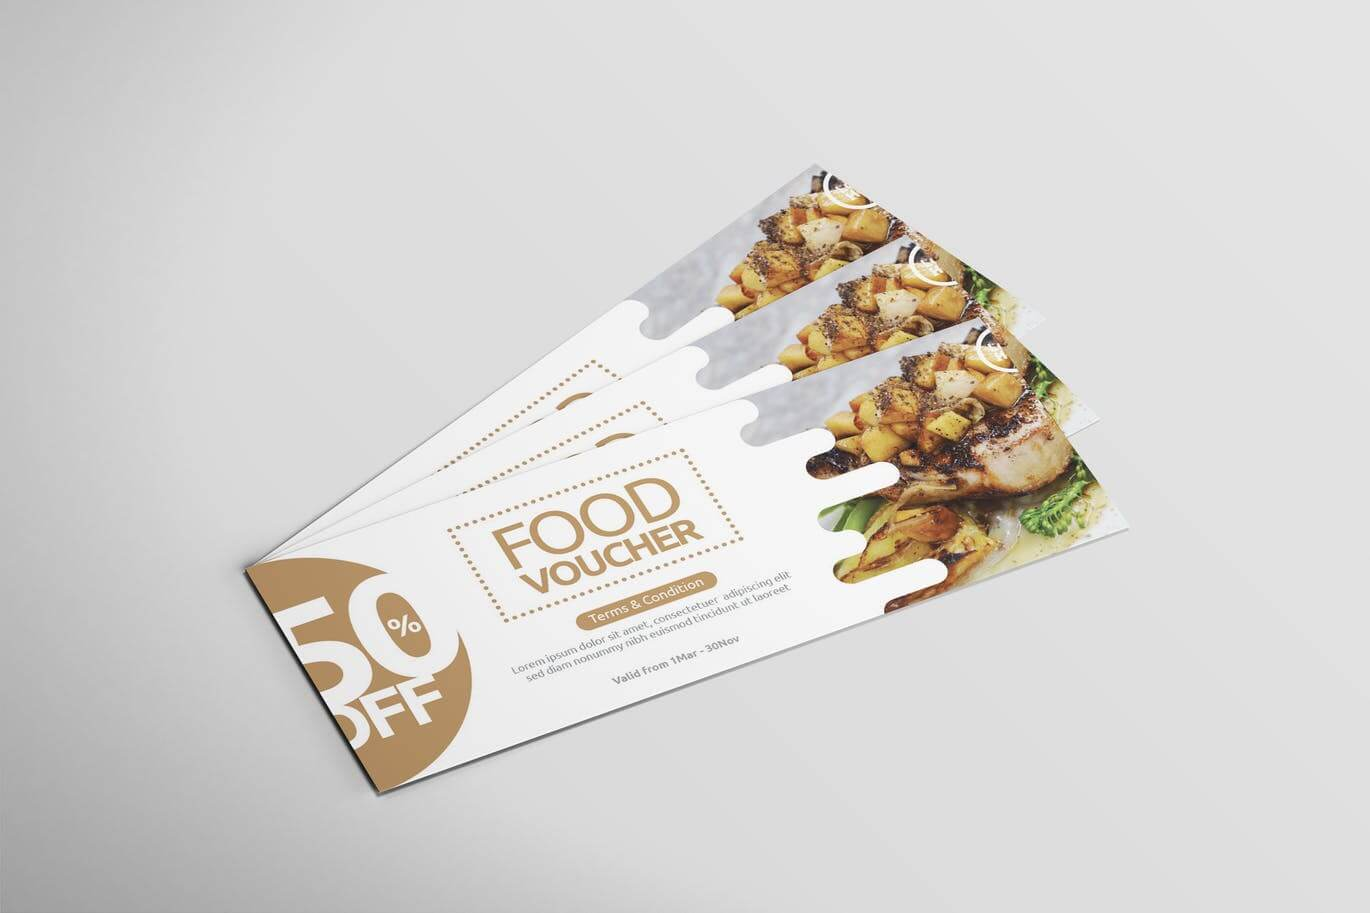 Restaurant Food - Voucher Design1